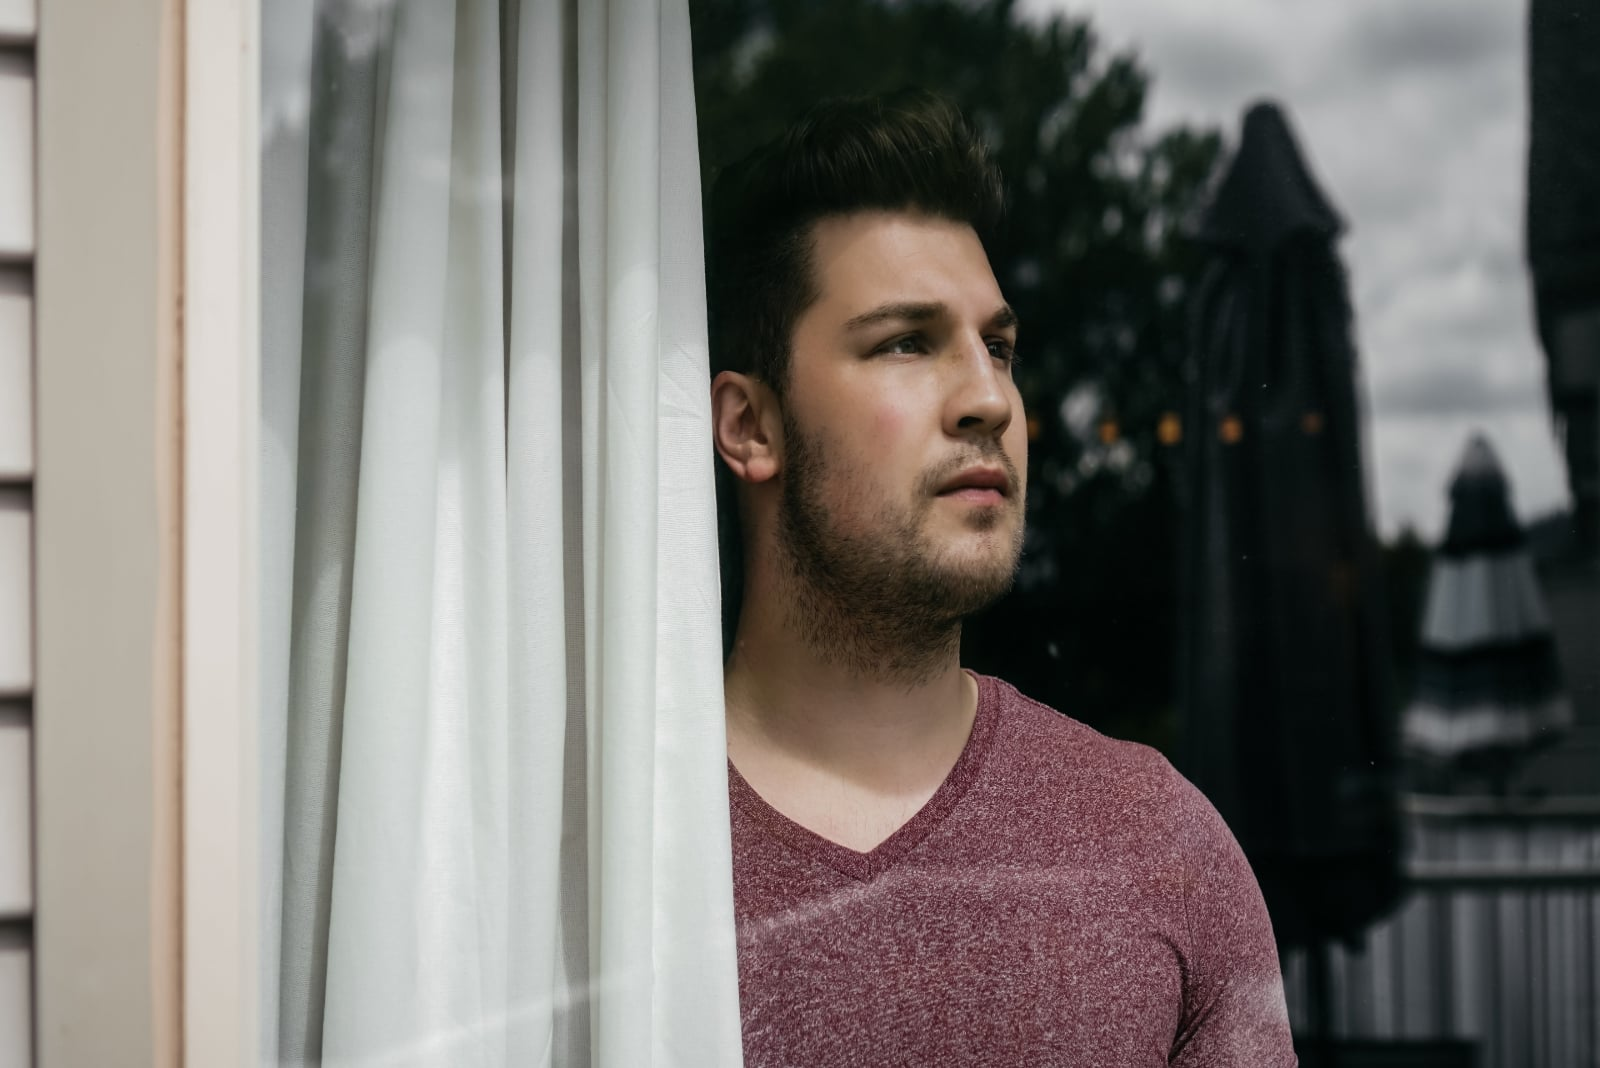 man looking through window while standing near white curtain